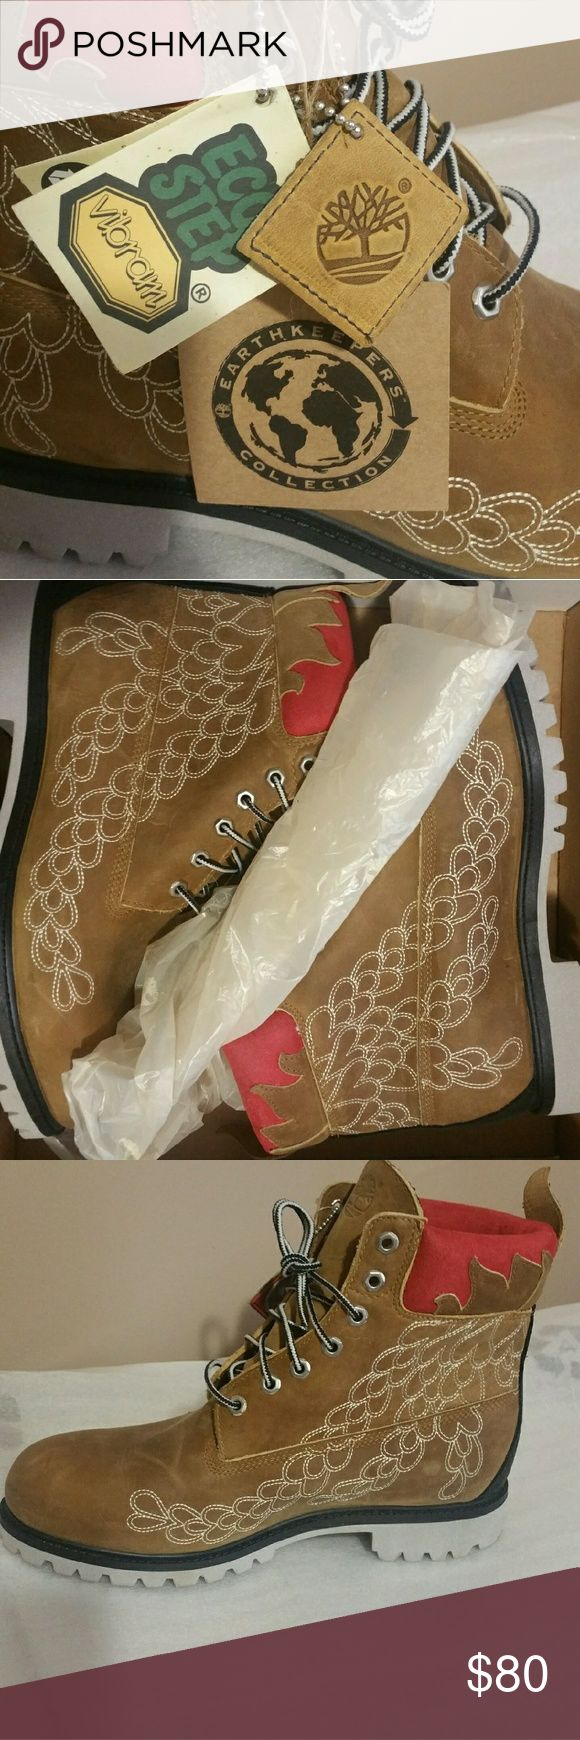 Timberlands (Brand New, Still In The Box) Never Been Worn (Authentic) Timbs...Size 12...   ✔Price Is Negotiable.. ✔Send Me A Reasonable Offer, And I Will Accept... ✔No Trades... ✔Perfect With No Flaws.. ✔2+ Items Bundled/Receive Discount...                   ✅THANKS FOR LOOKING😉 Timberland Shoes Lace Up Boots